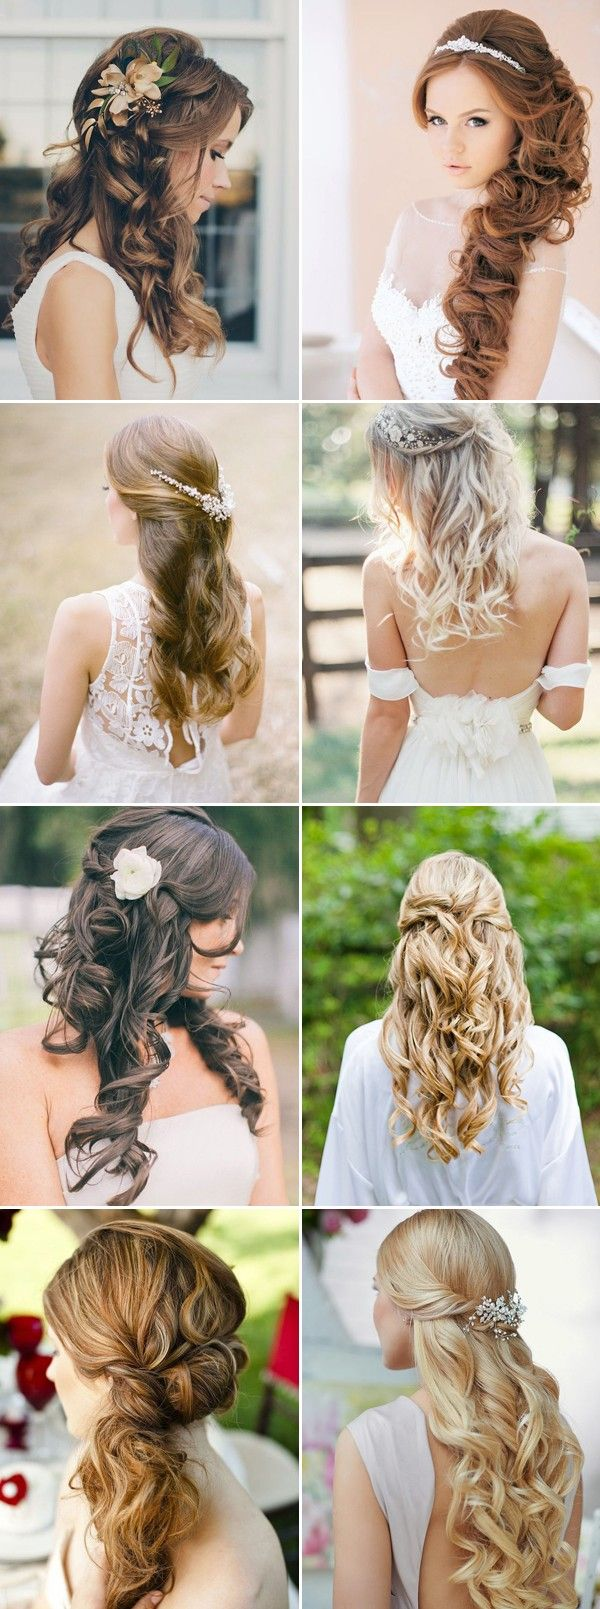 simple half down half up wedding hairstyles / http://www.himisspuff.com/bridal-wedding-hairstyles-for-long-hair/14/